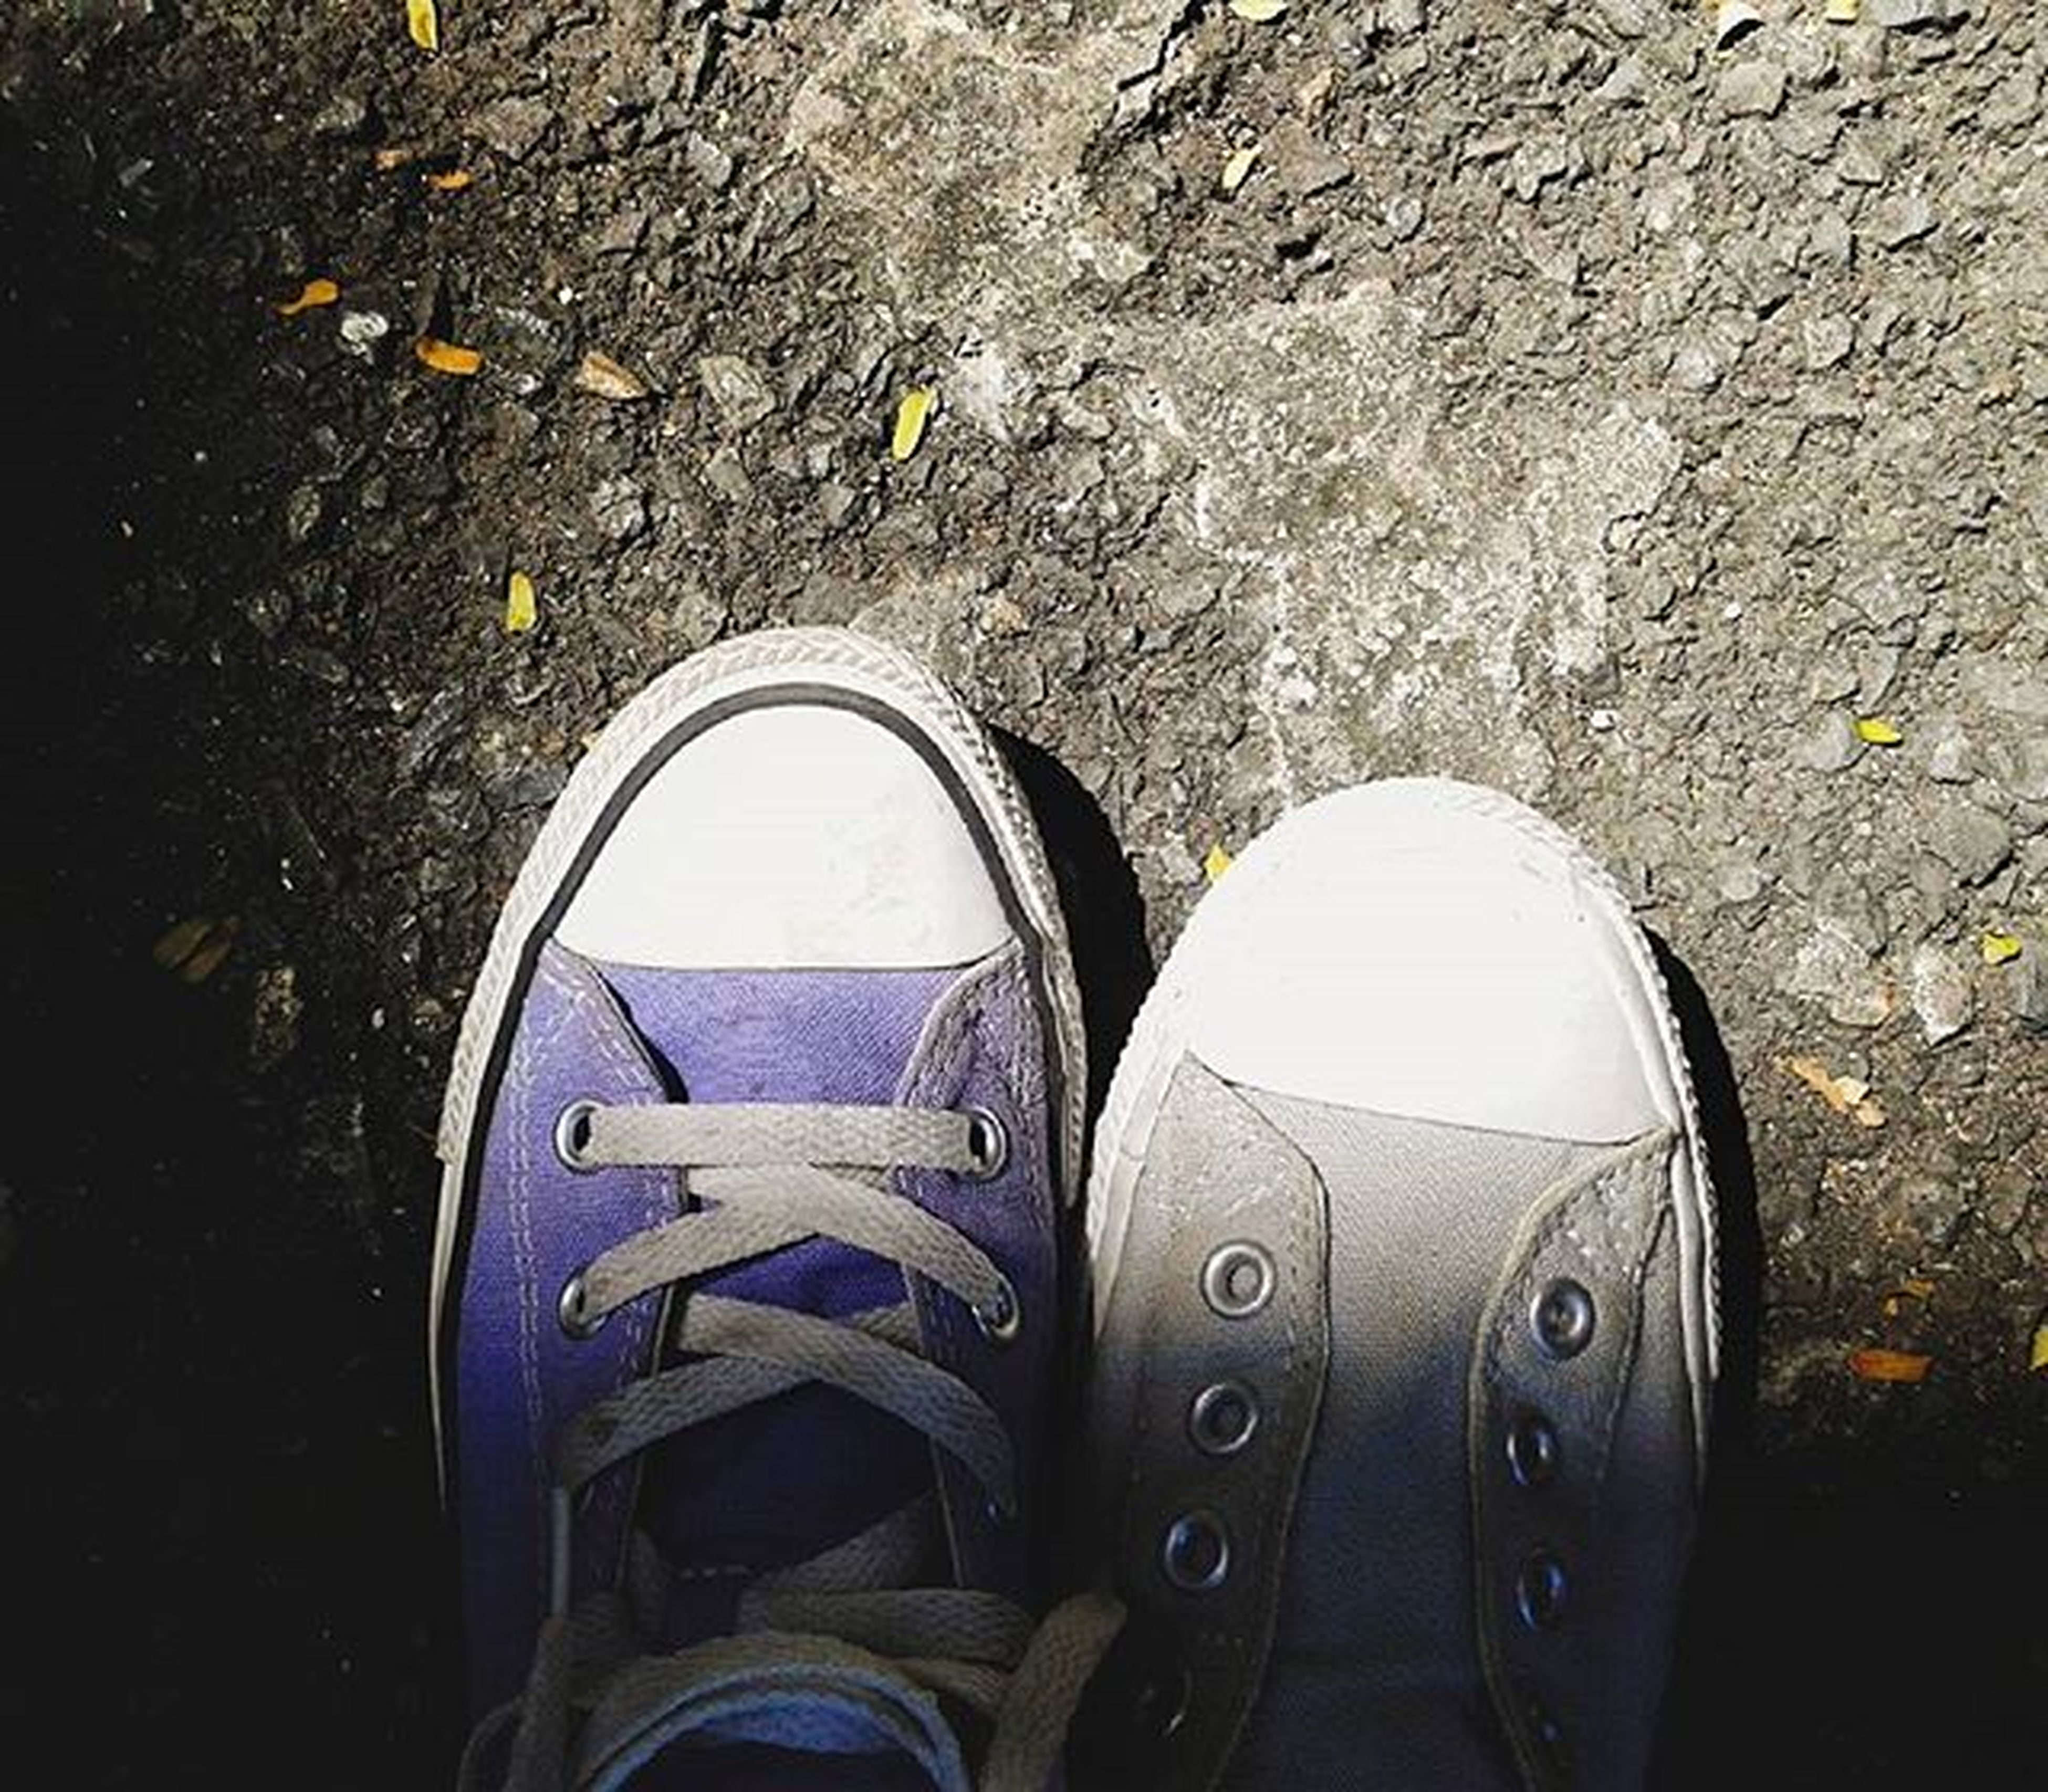 shoe, transportation, high angle view, street, low section, day, outdoors, mode of transport, footwear, close-up, part of, pair, personal perspective, land vehicle, no people, abandoned, directly above, sunlight, field, still life